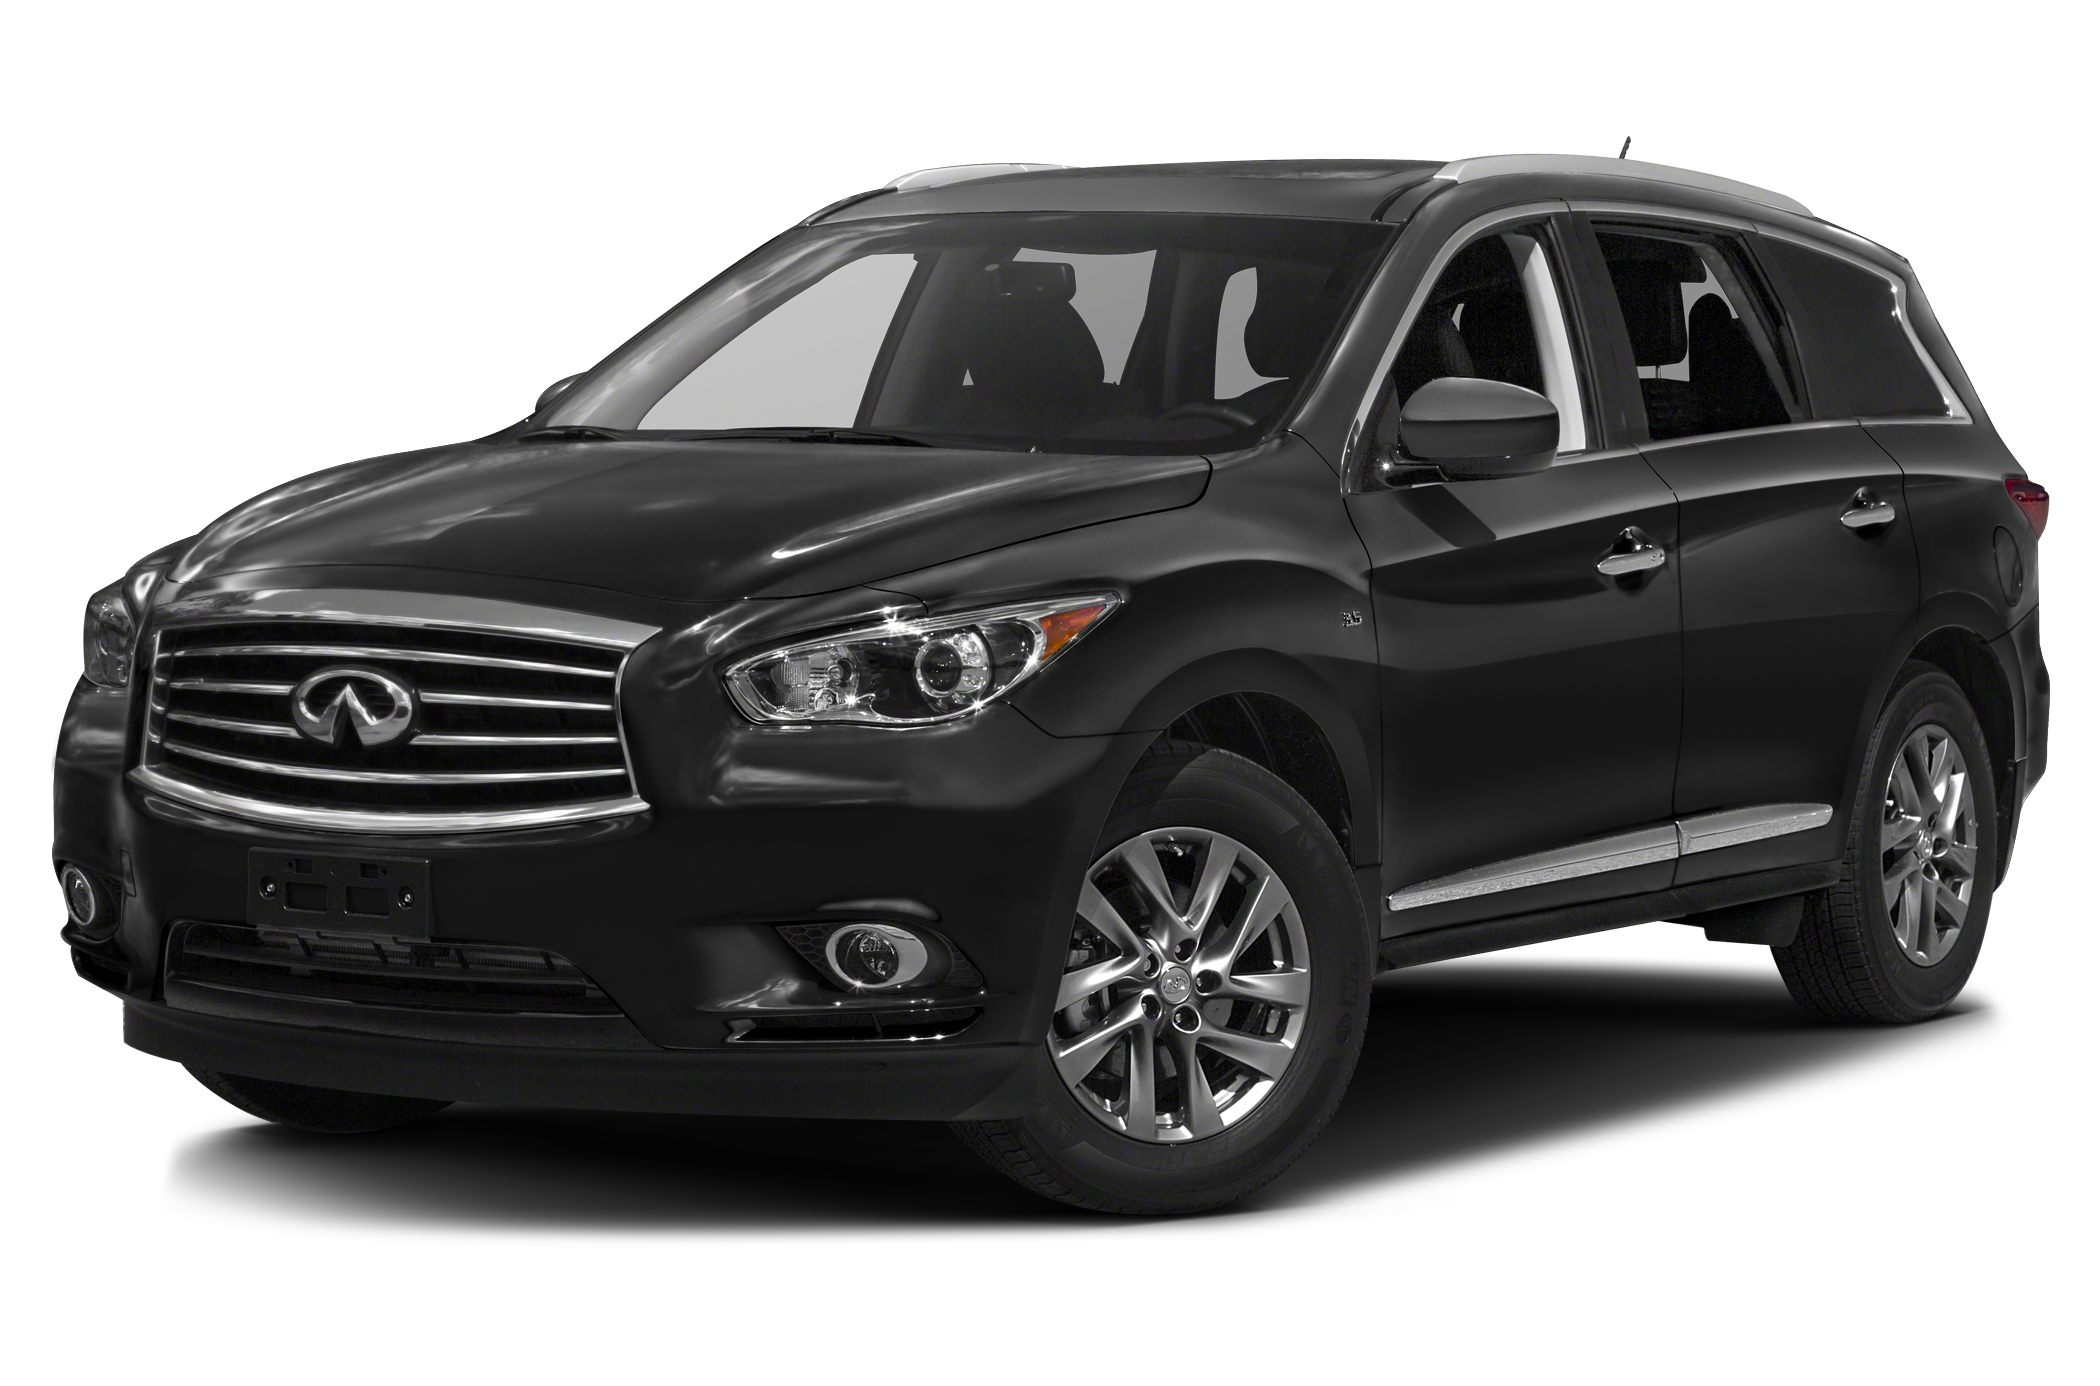 2015 Infiniti QX60 Base SUV for sale in Little Rock for $51,036 with 10 miles